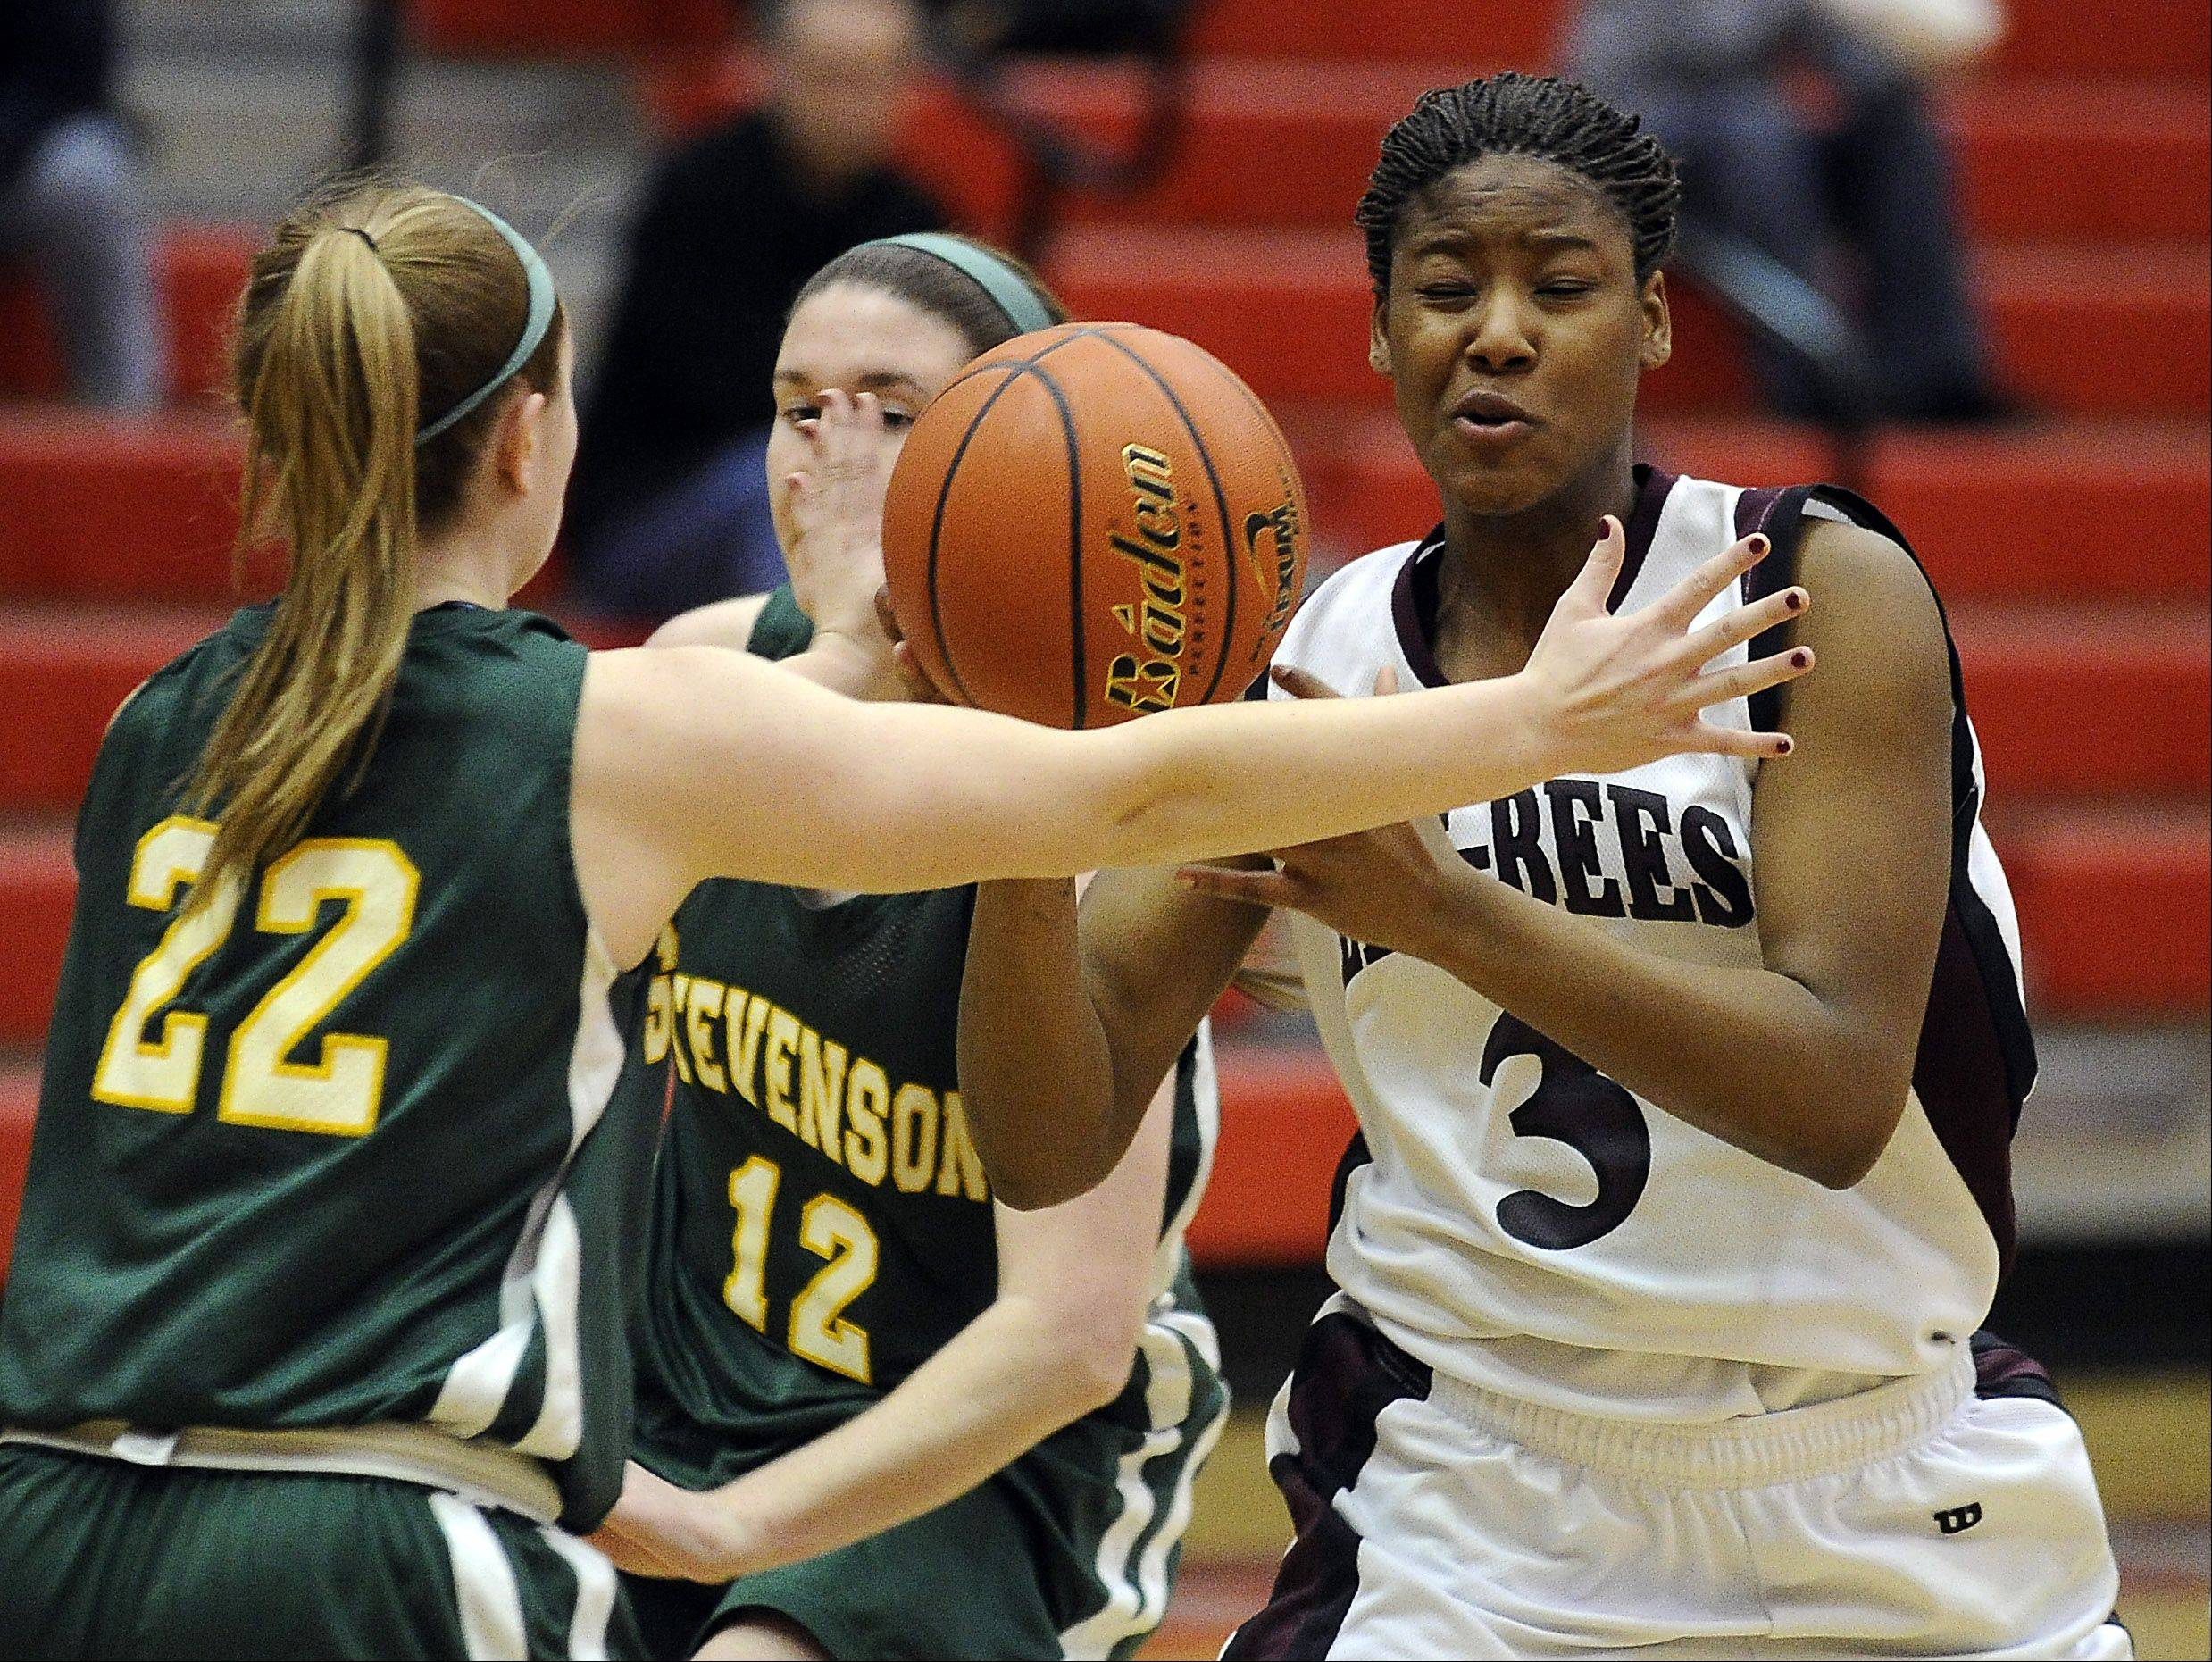 Stevenson's Katherine Moffat knocks the ball out-of-the-hands of Zion-Benton's Octavia Crump in the first quarter of the sectional semifinal play at Palatine on Monday.